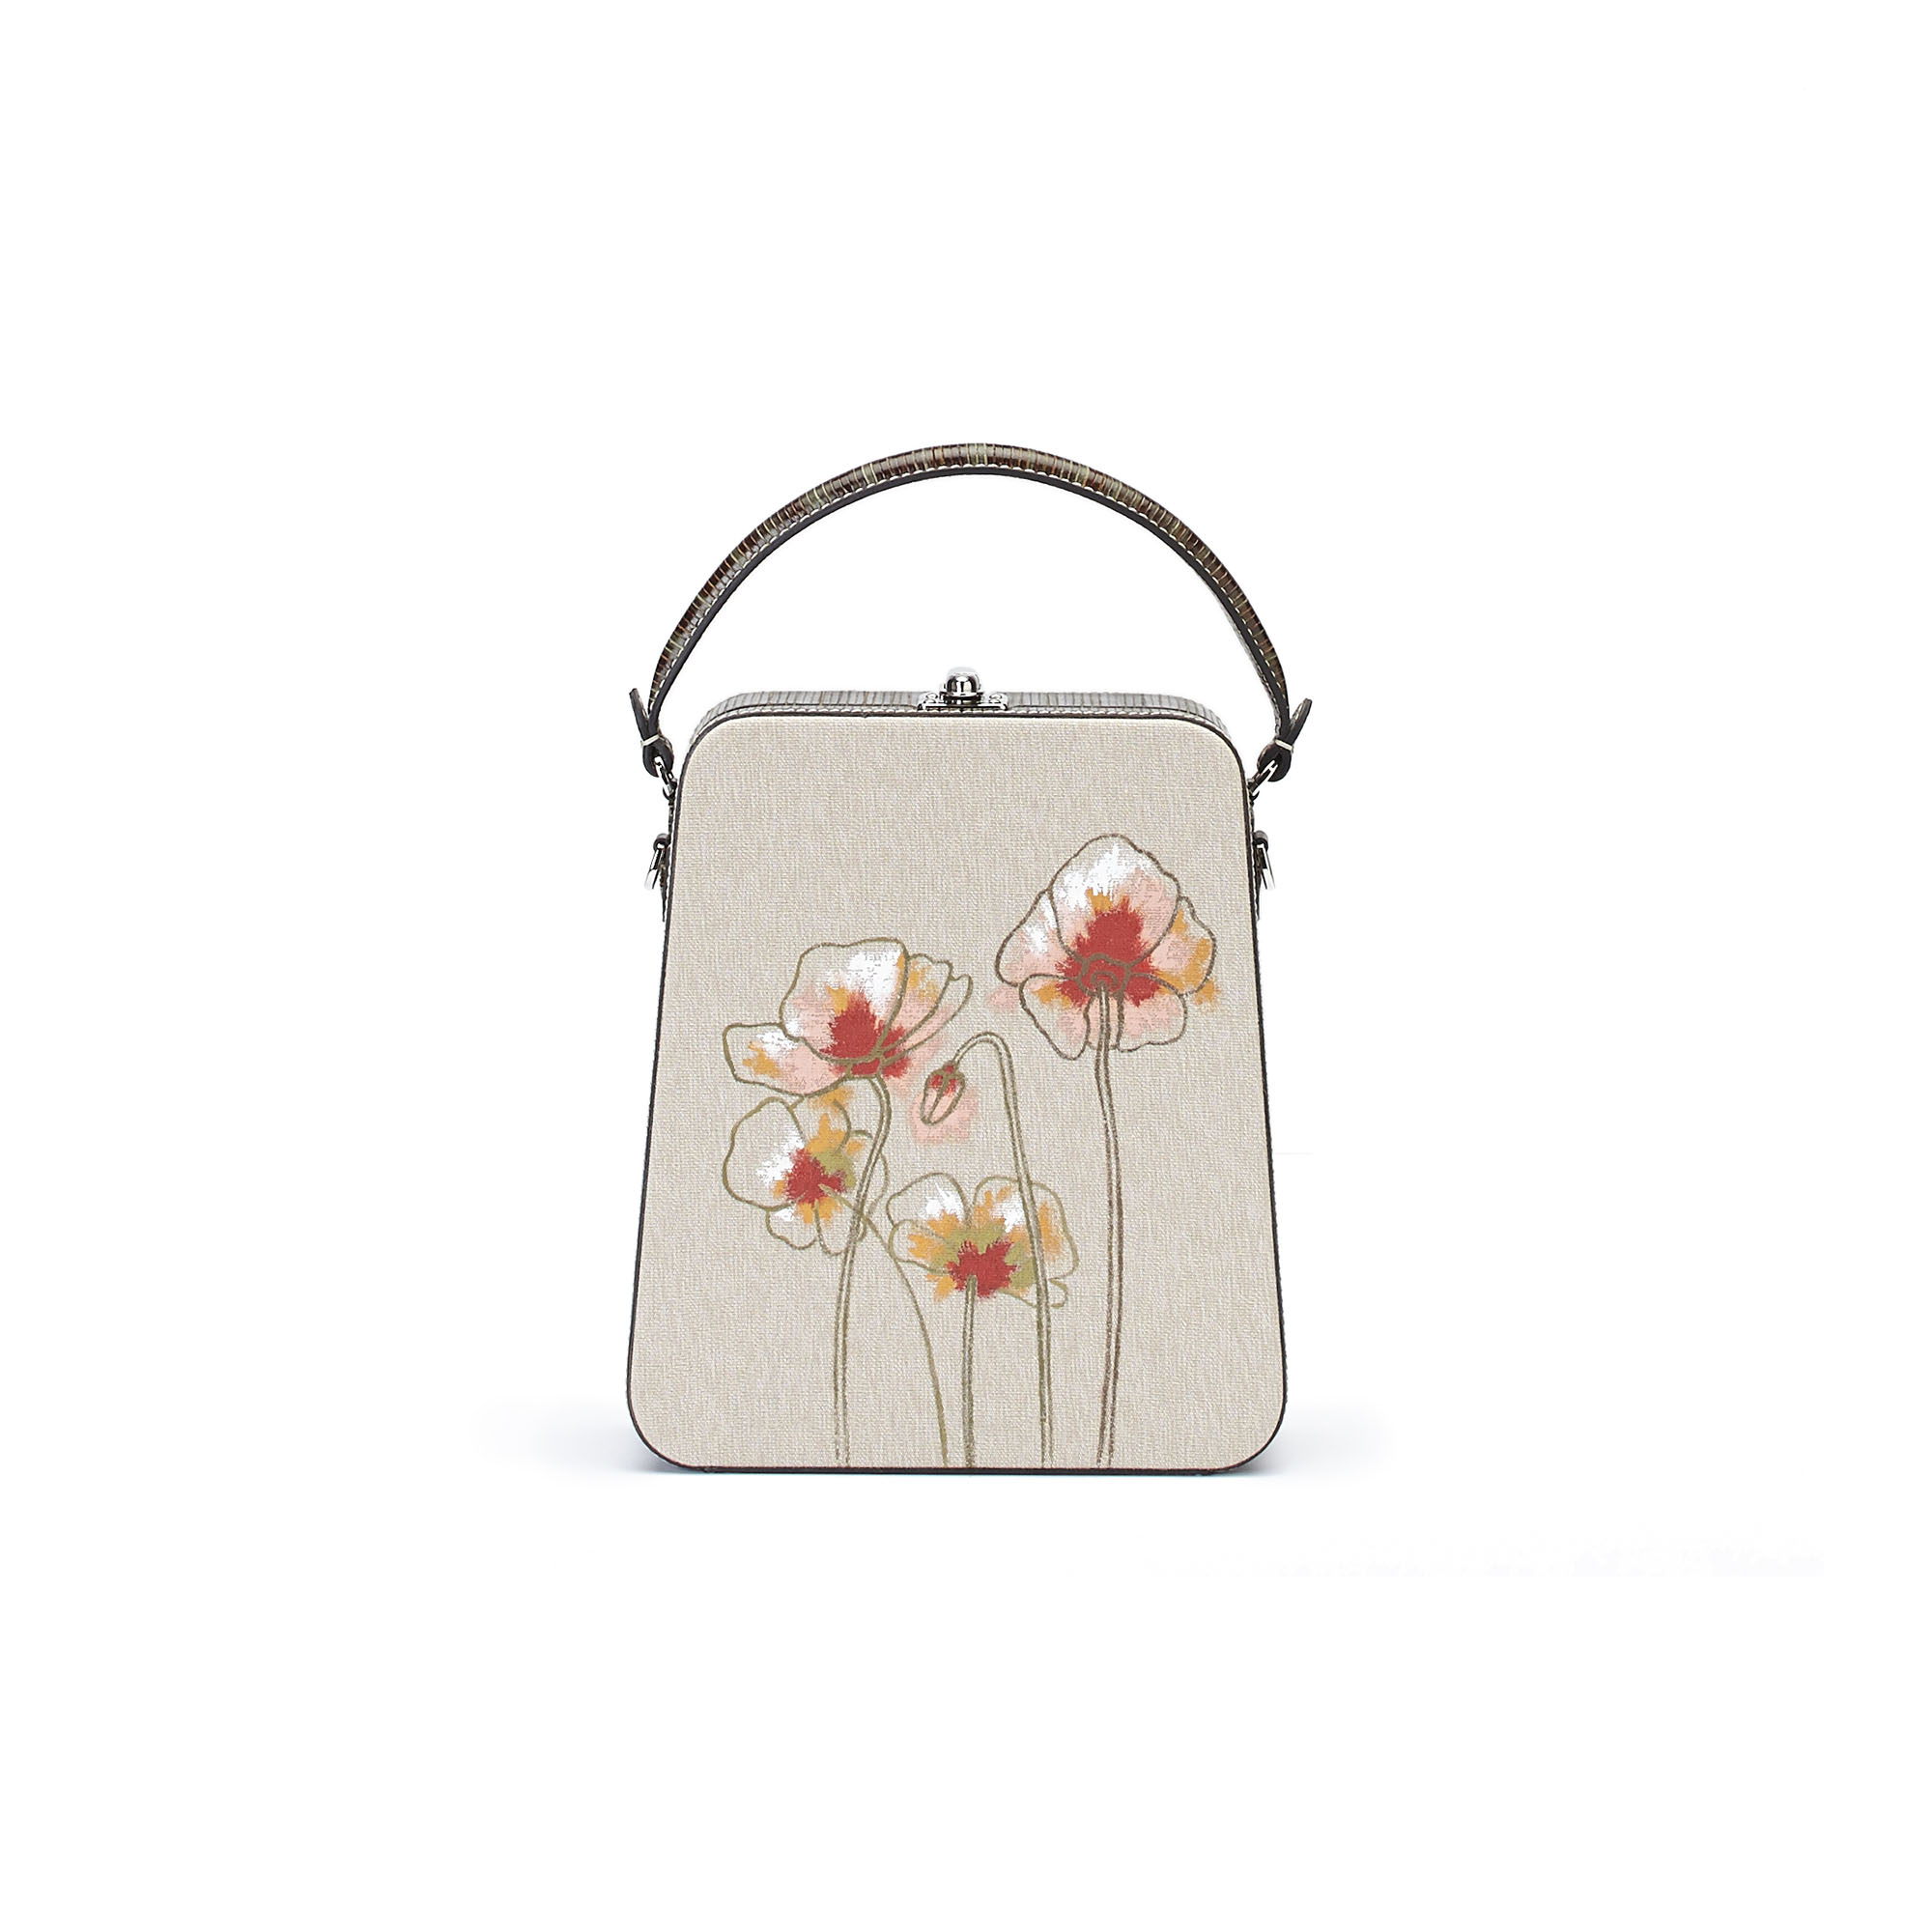 The military green with Poppy flowers wood leather canvas Tall Bertoncina bag by Bertoni 1949 01